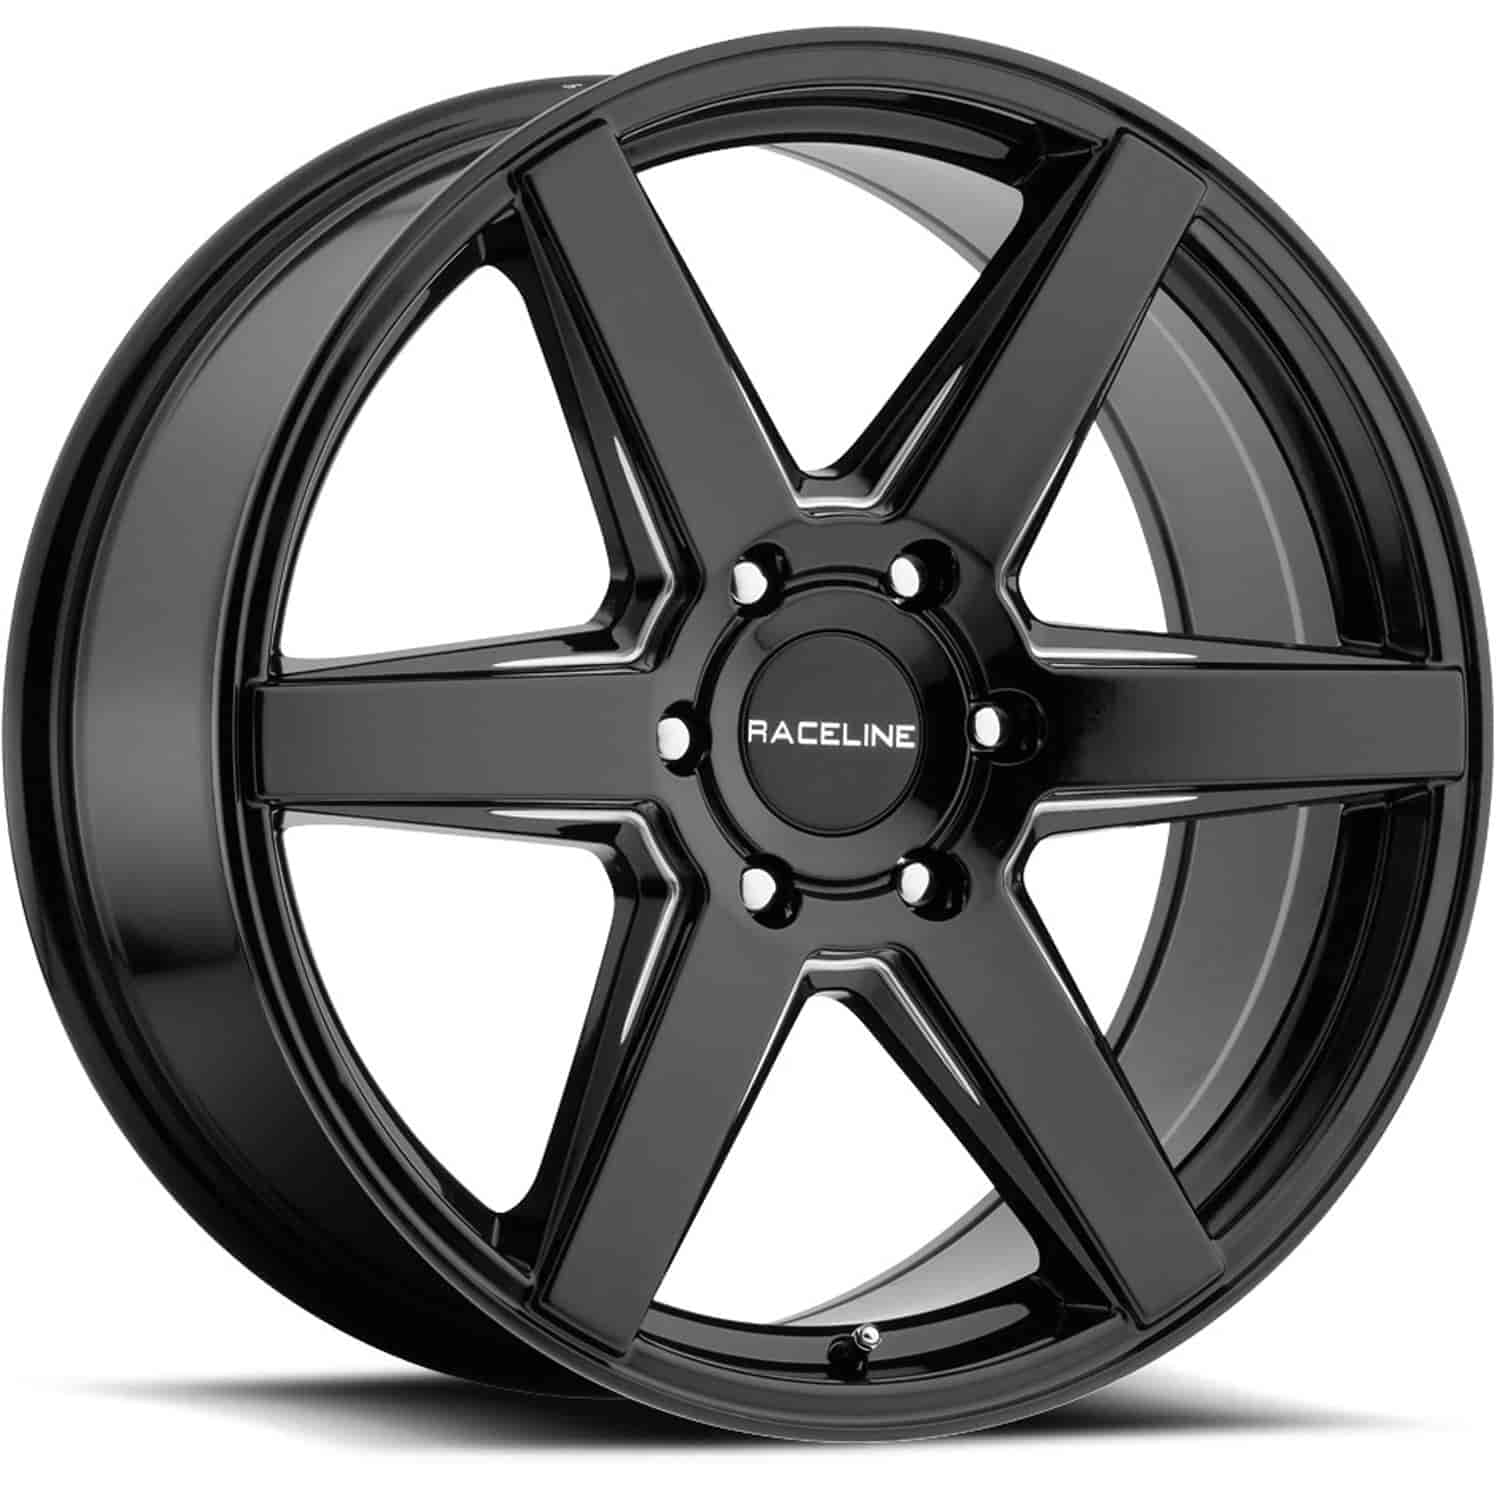 Raceline Wheels 156B2856035